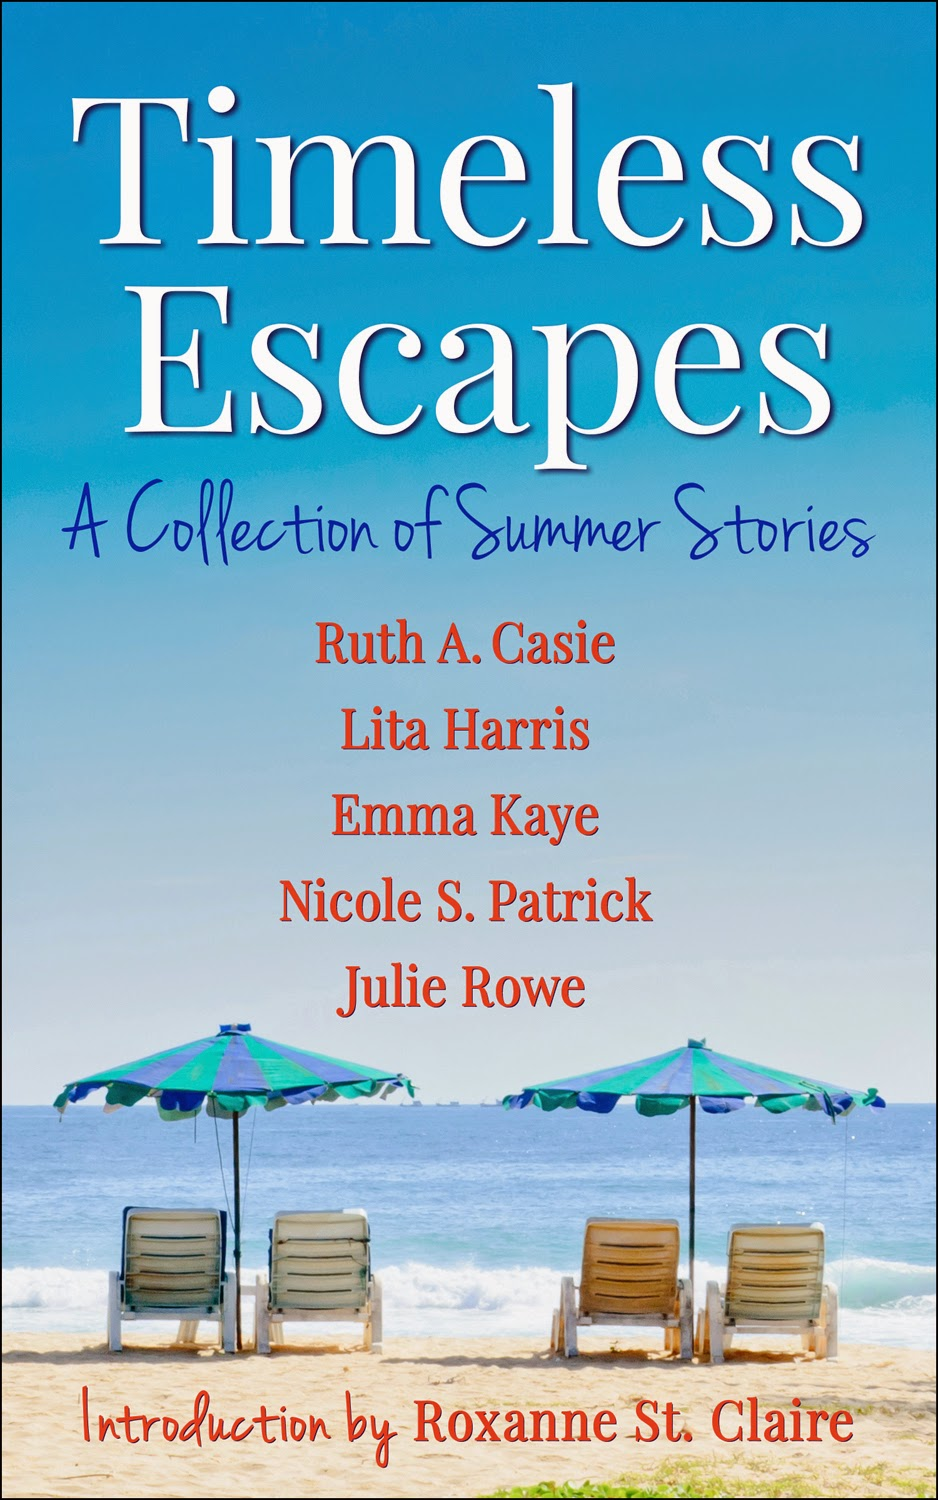 Interview with Timeless Escapes anthology author Julie Rowe